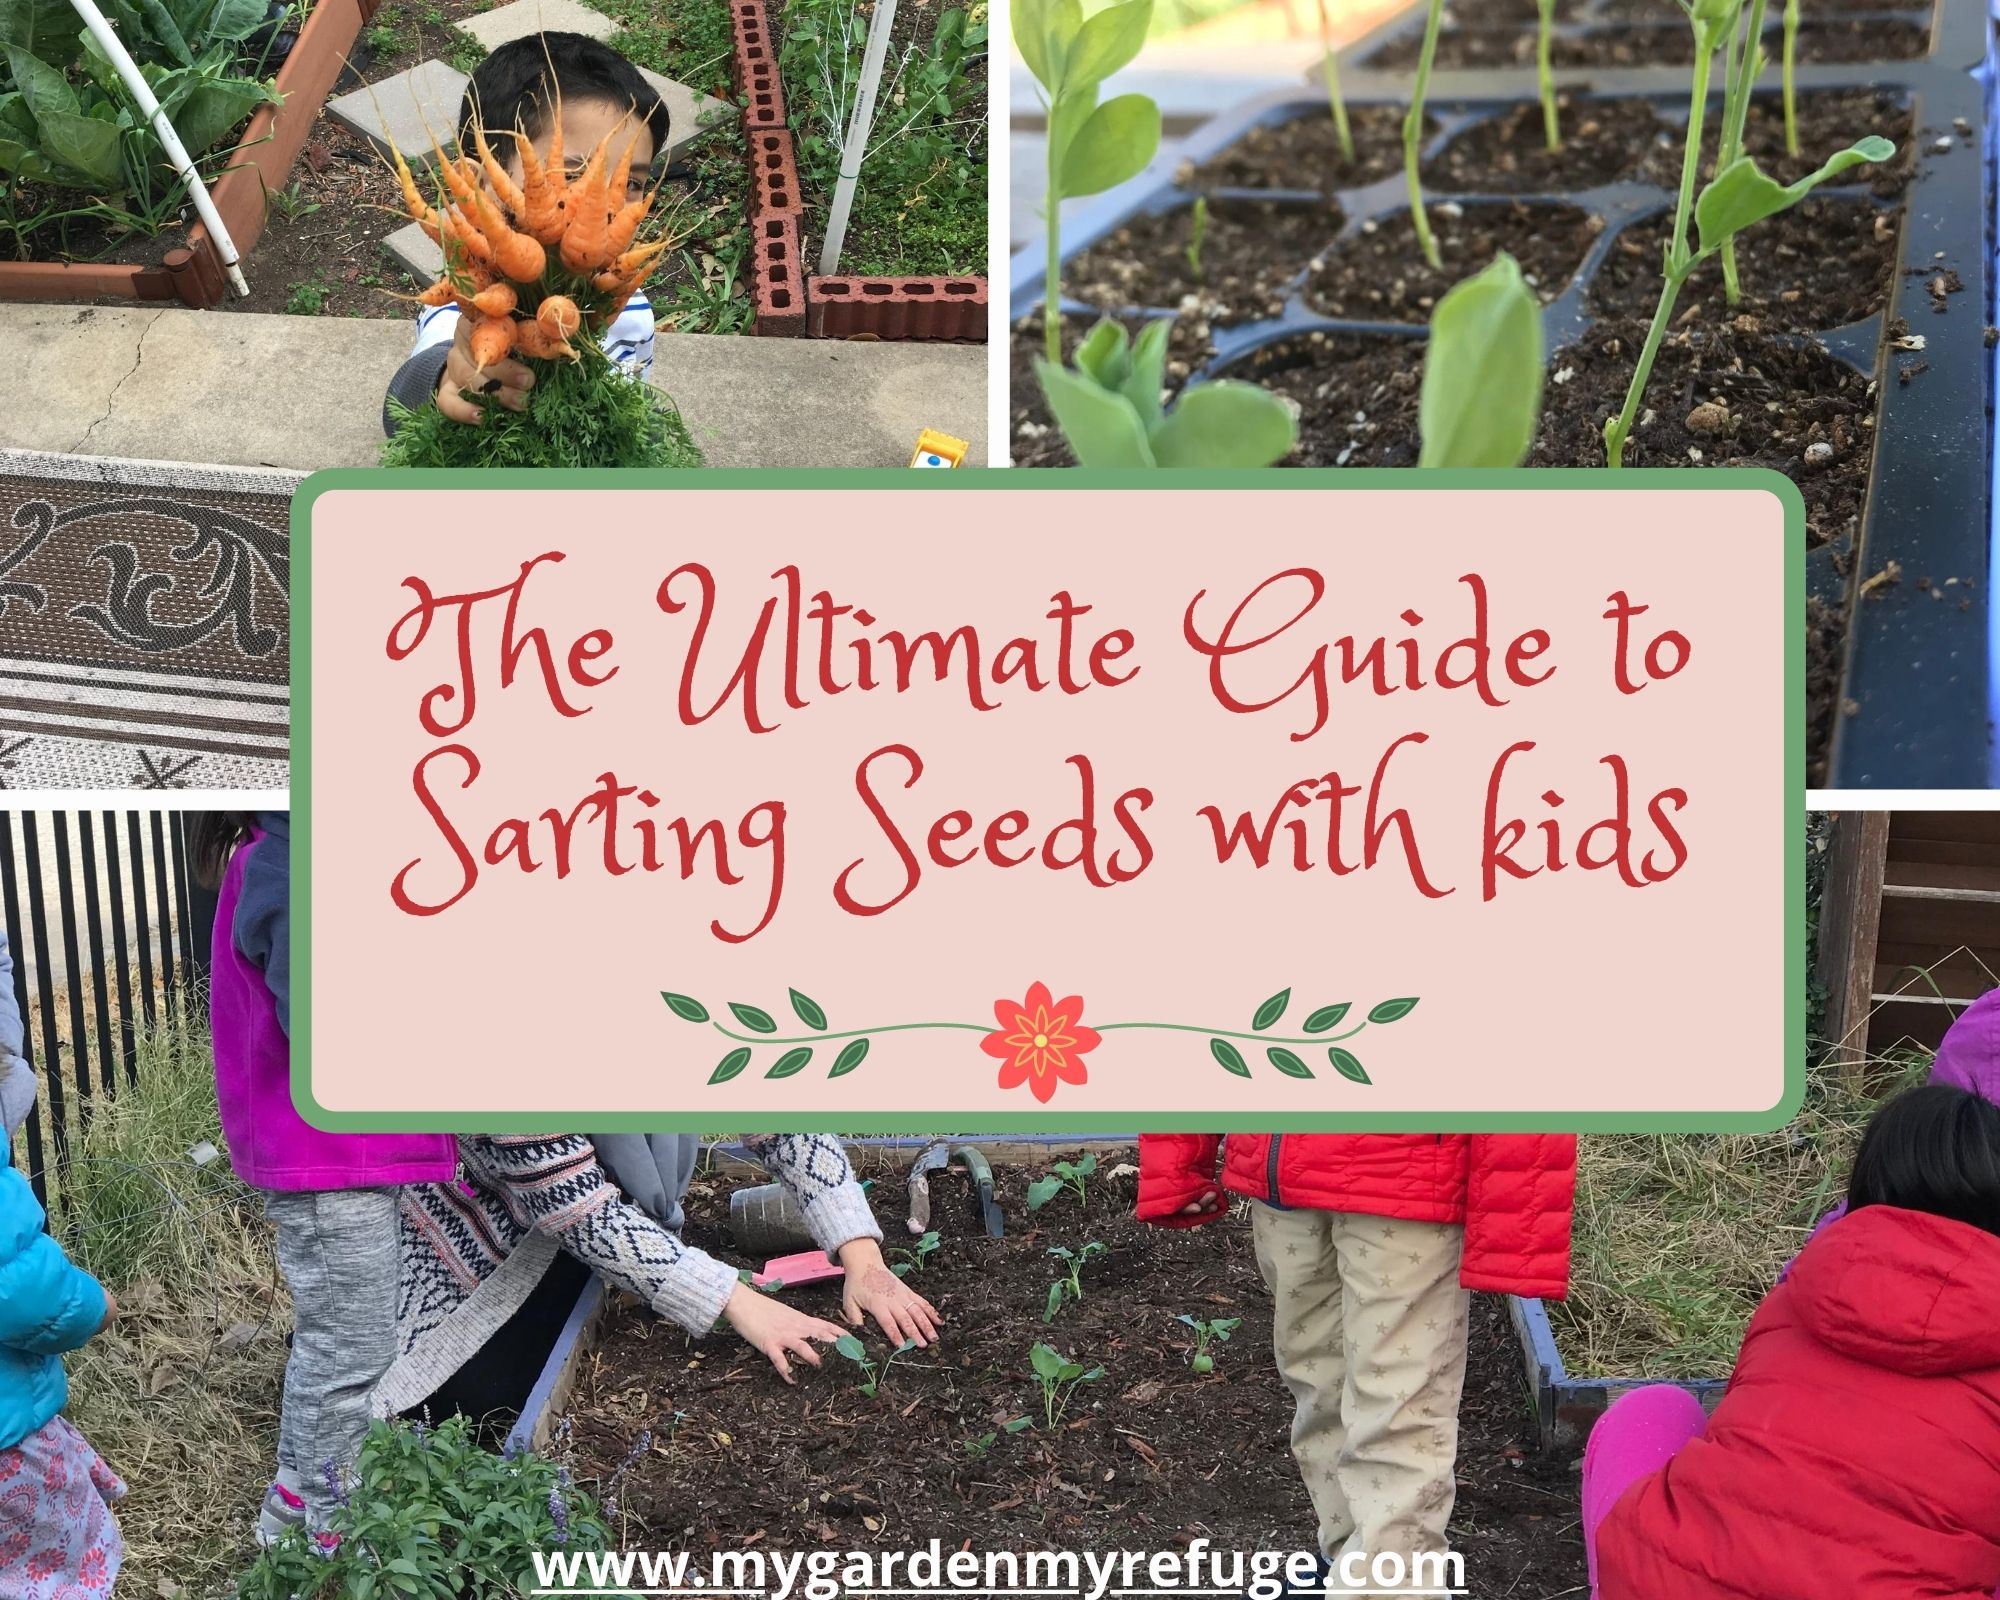 The guide to seed starting with kids